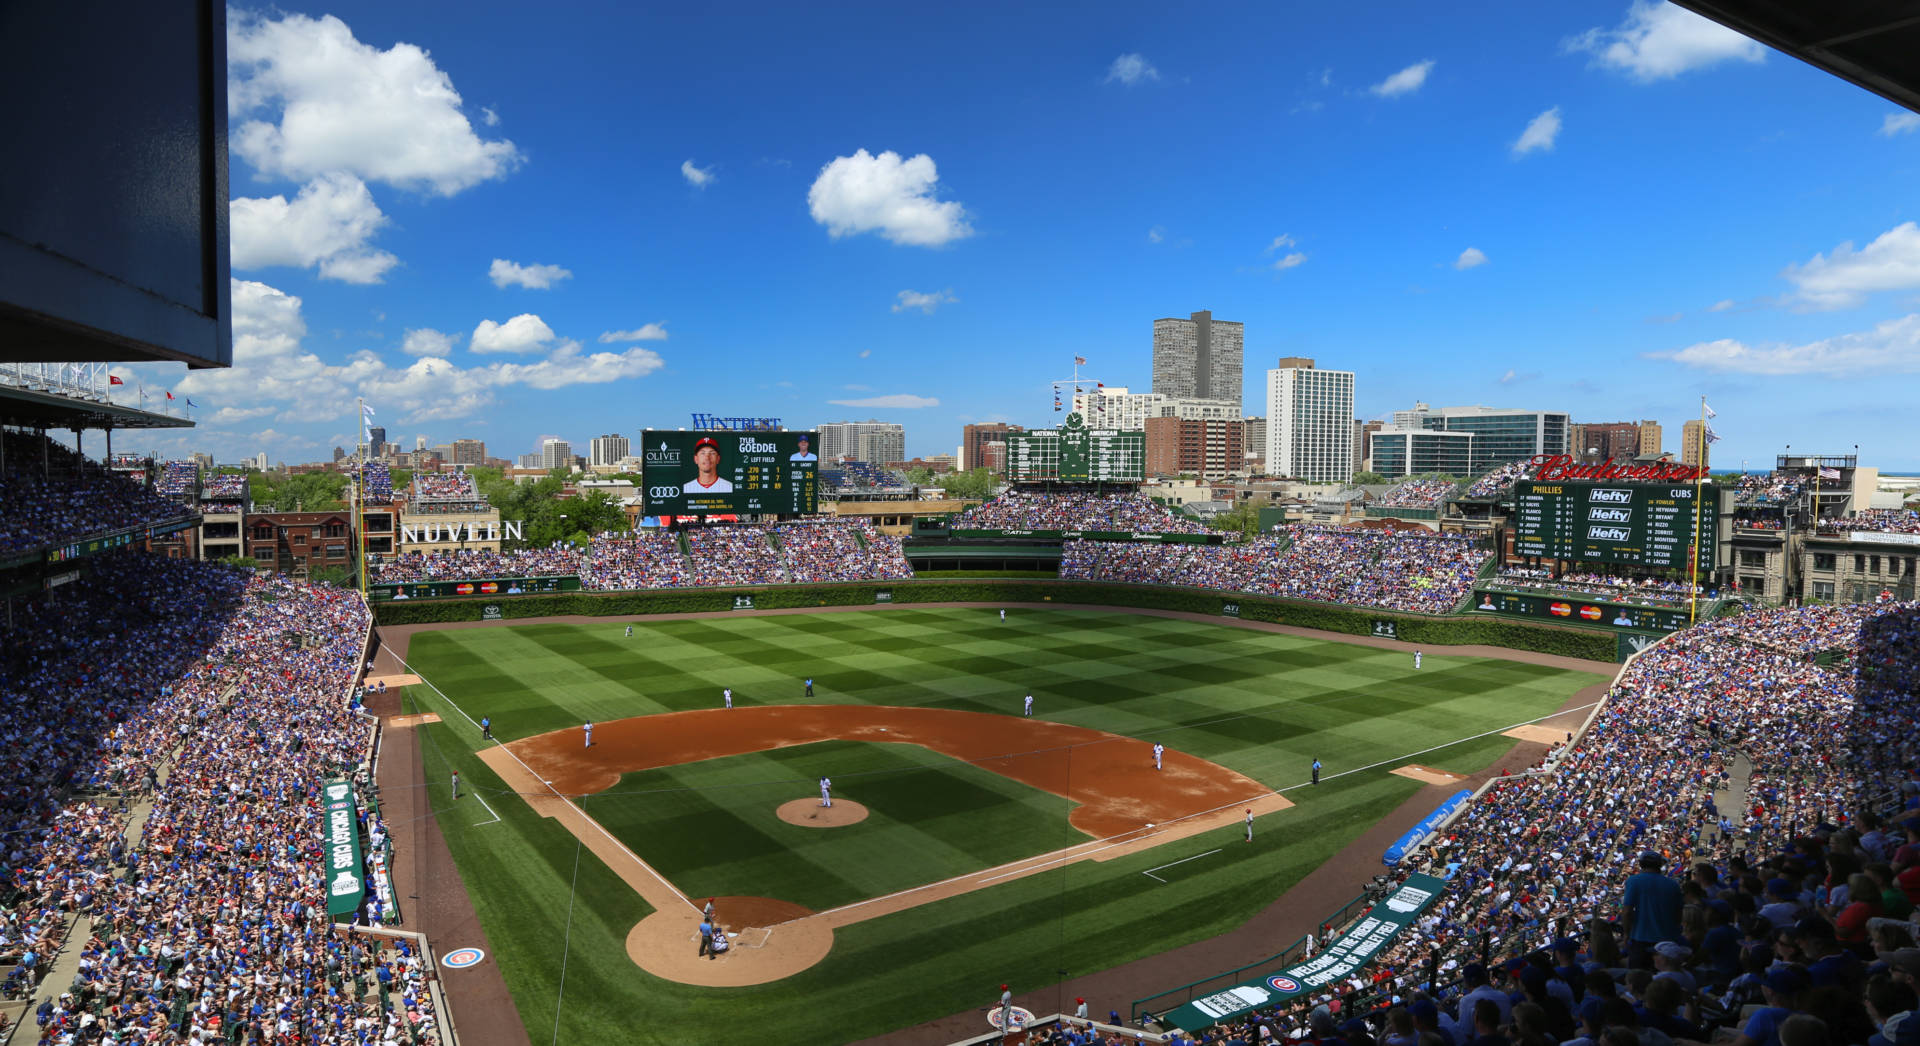 7 Things Giants Fans Should Know About the Cubs and Their Followers